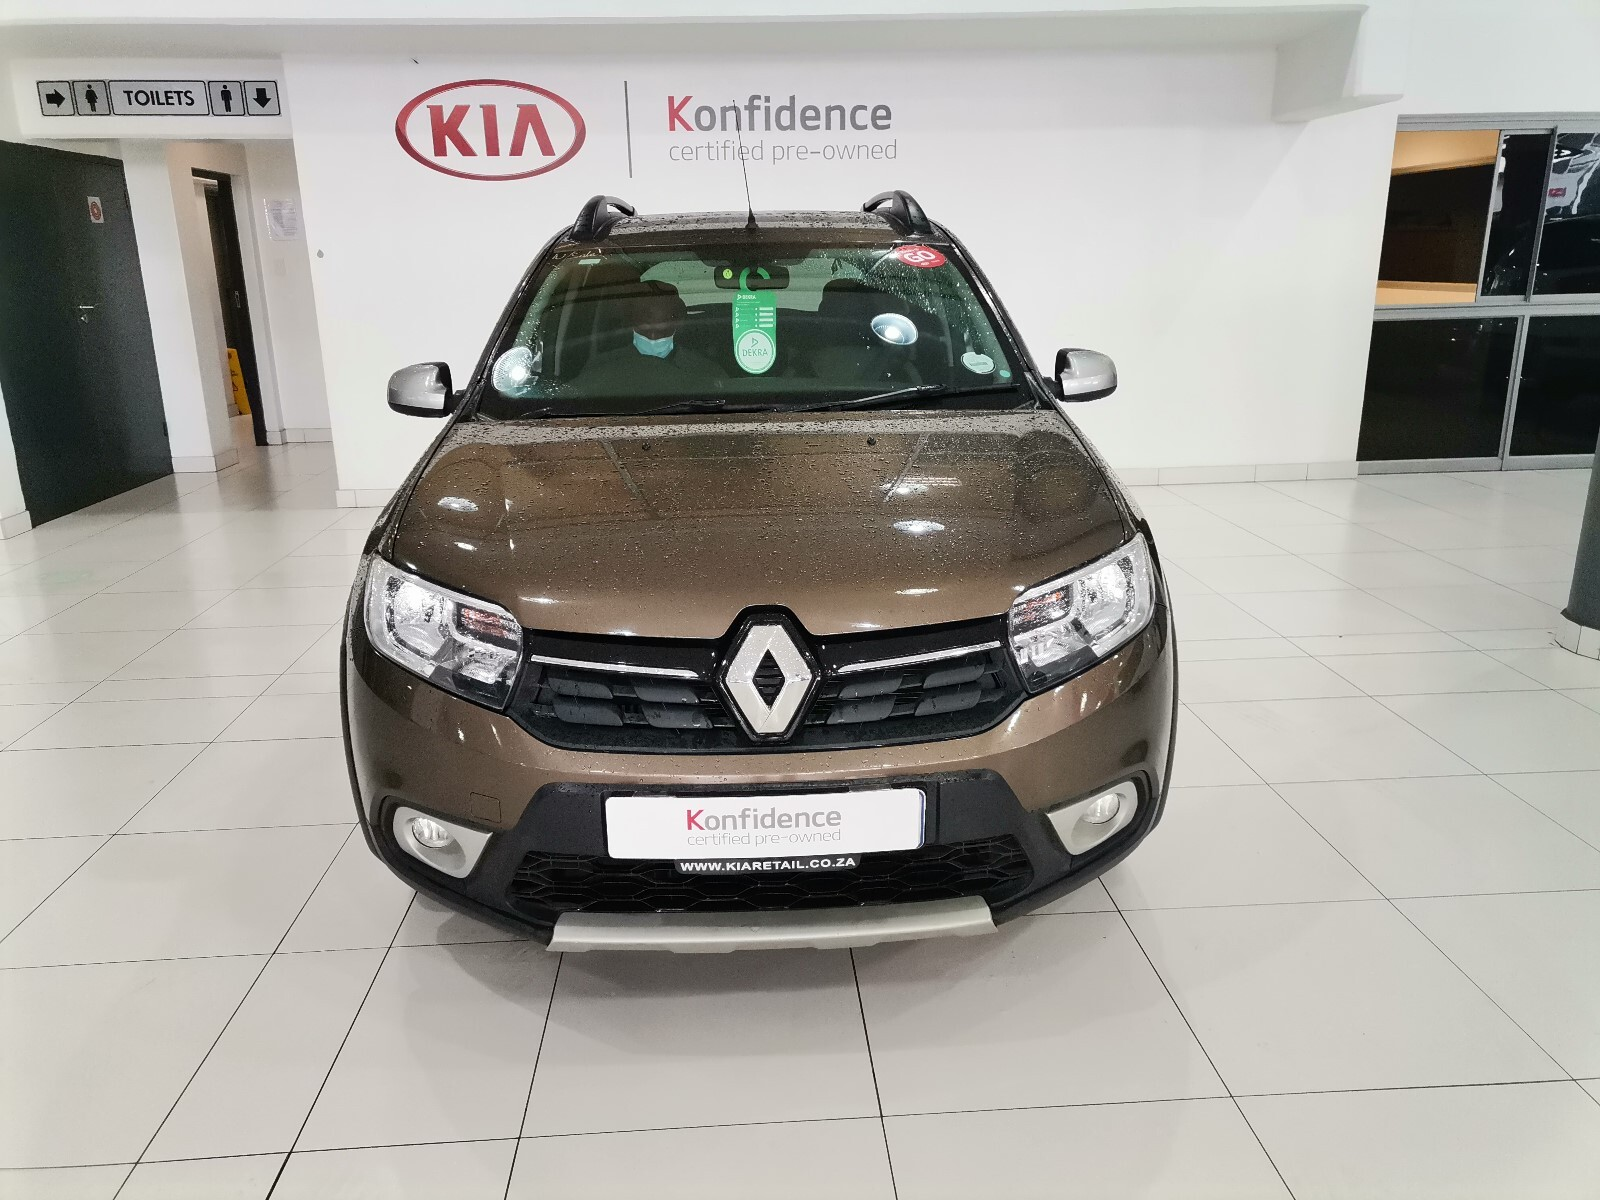 RENAULT 900T STEPWAY EXPRESSION Pinetown 1307425